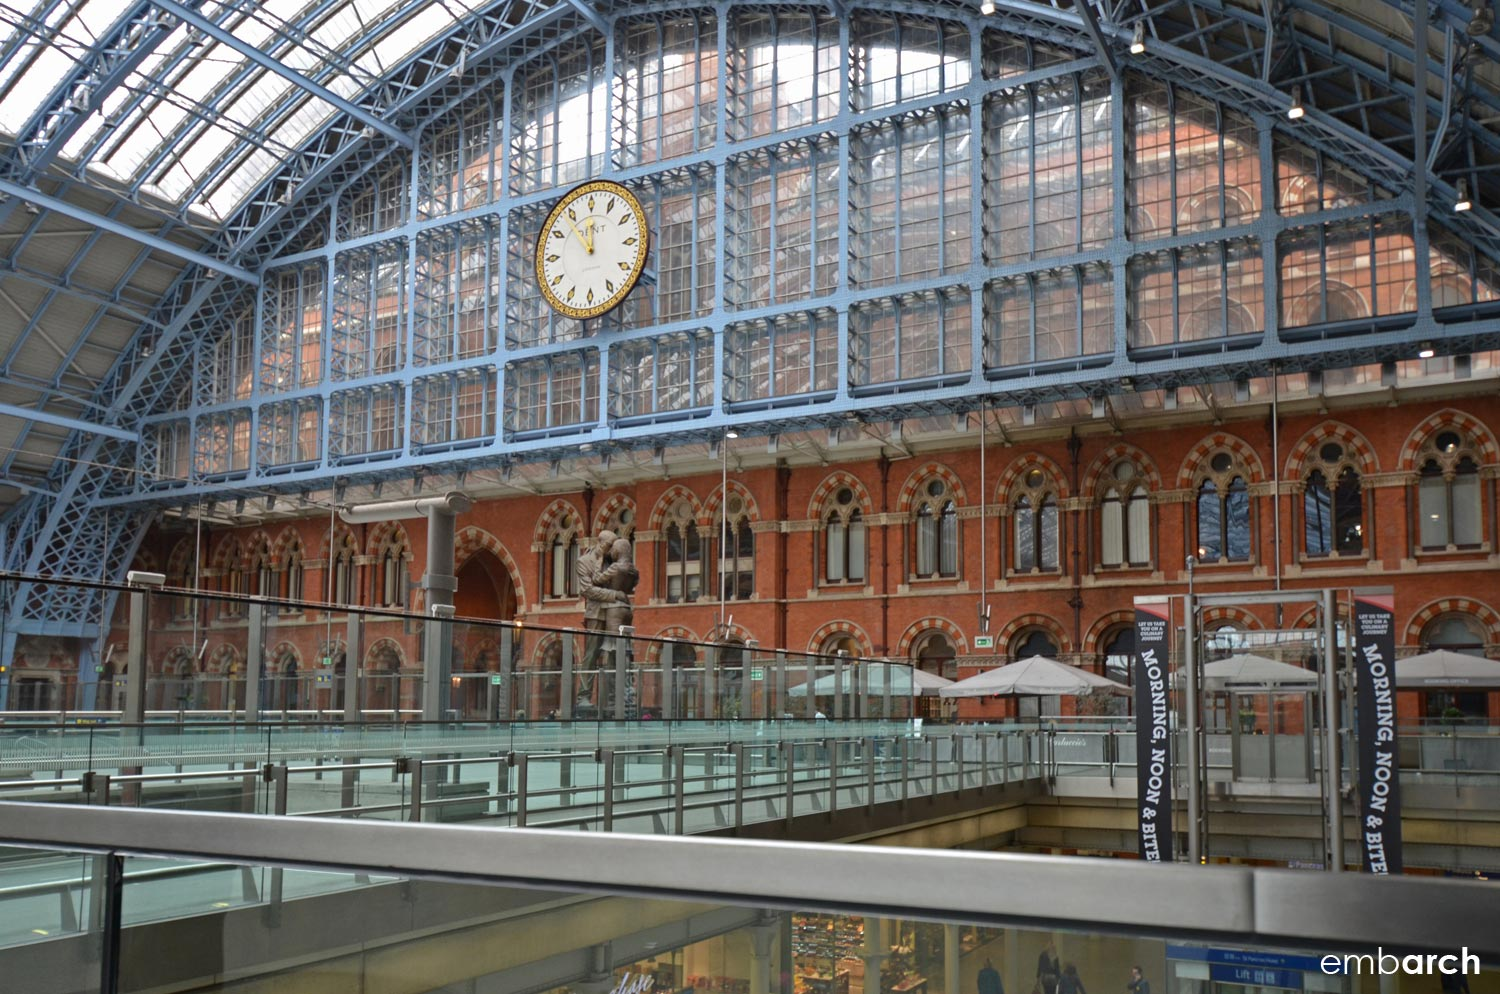 Find out more:   St. Pancras, London